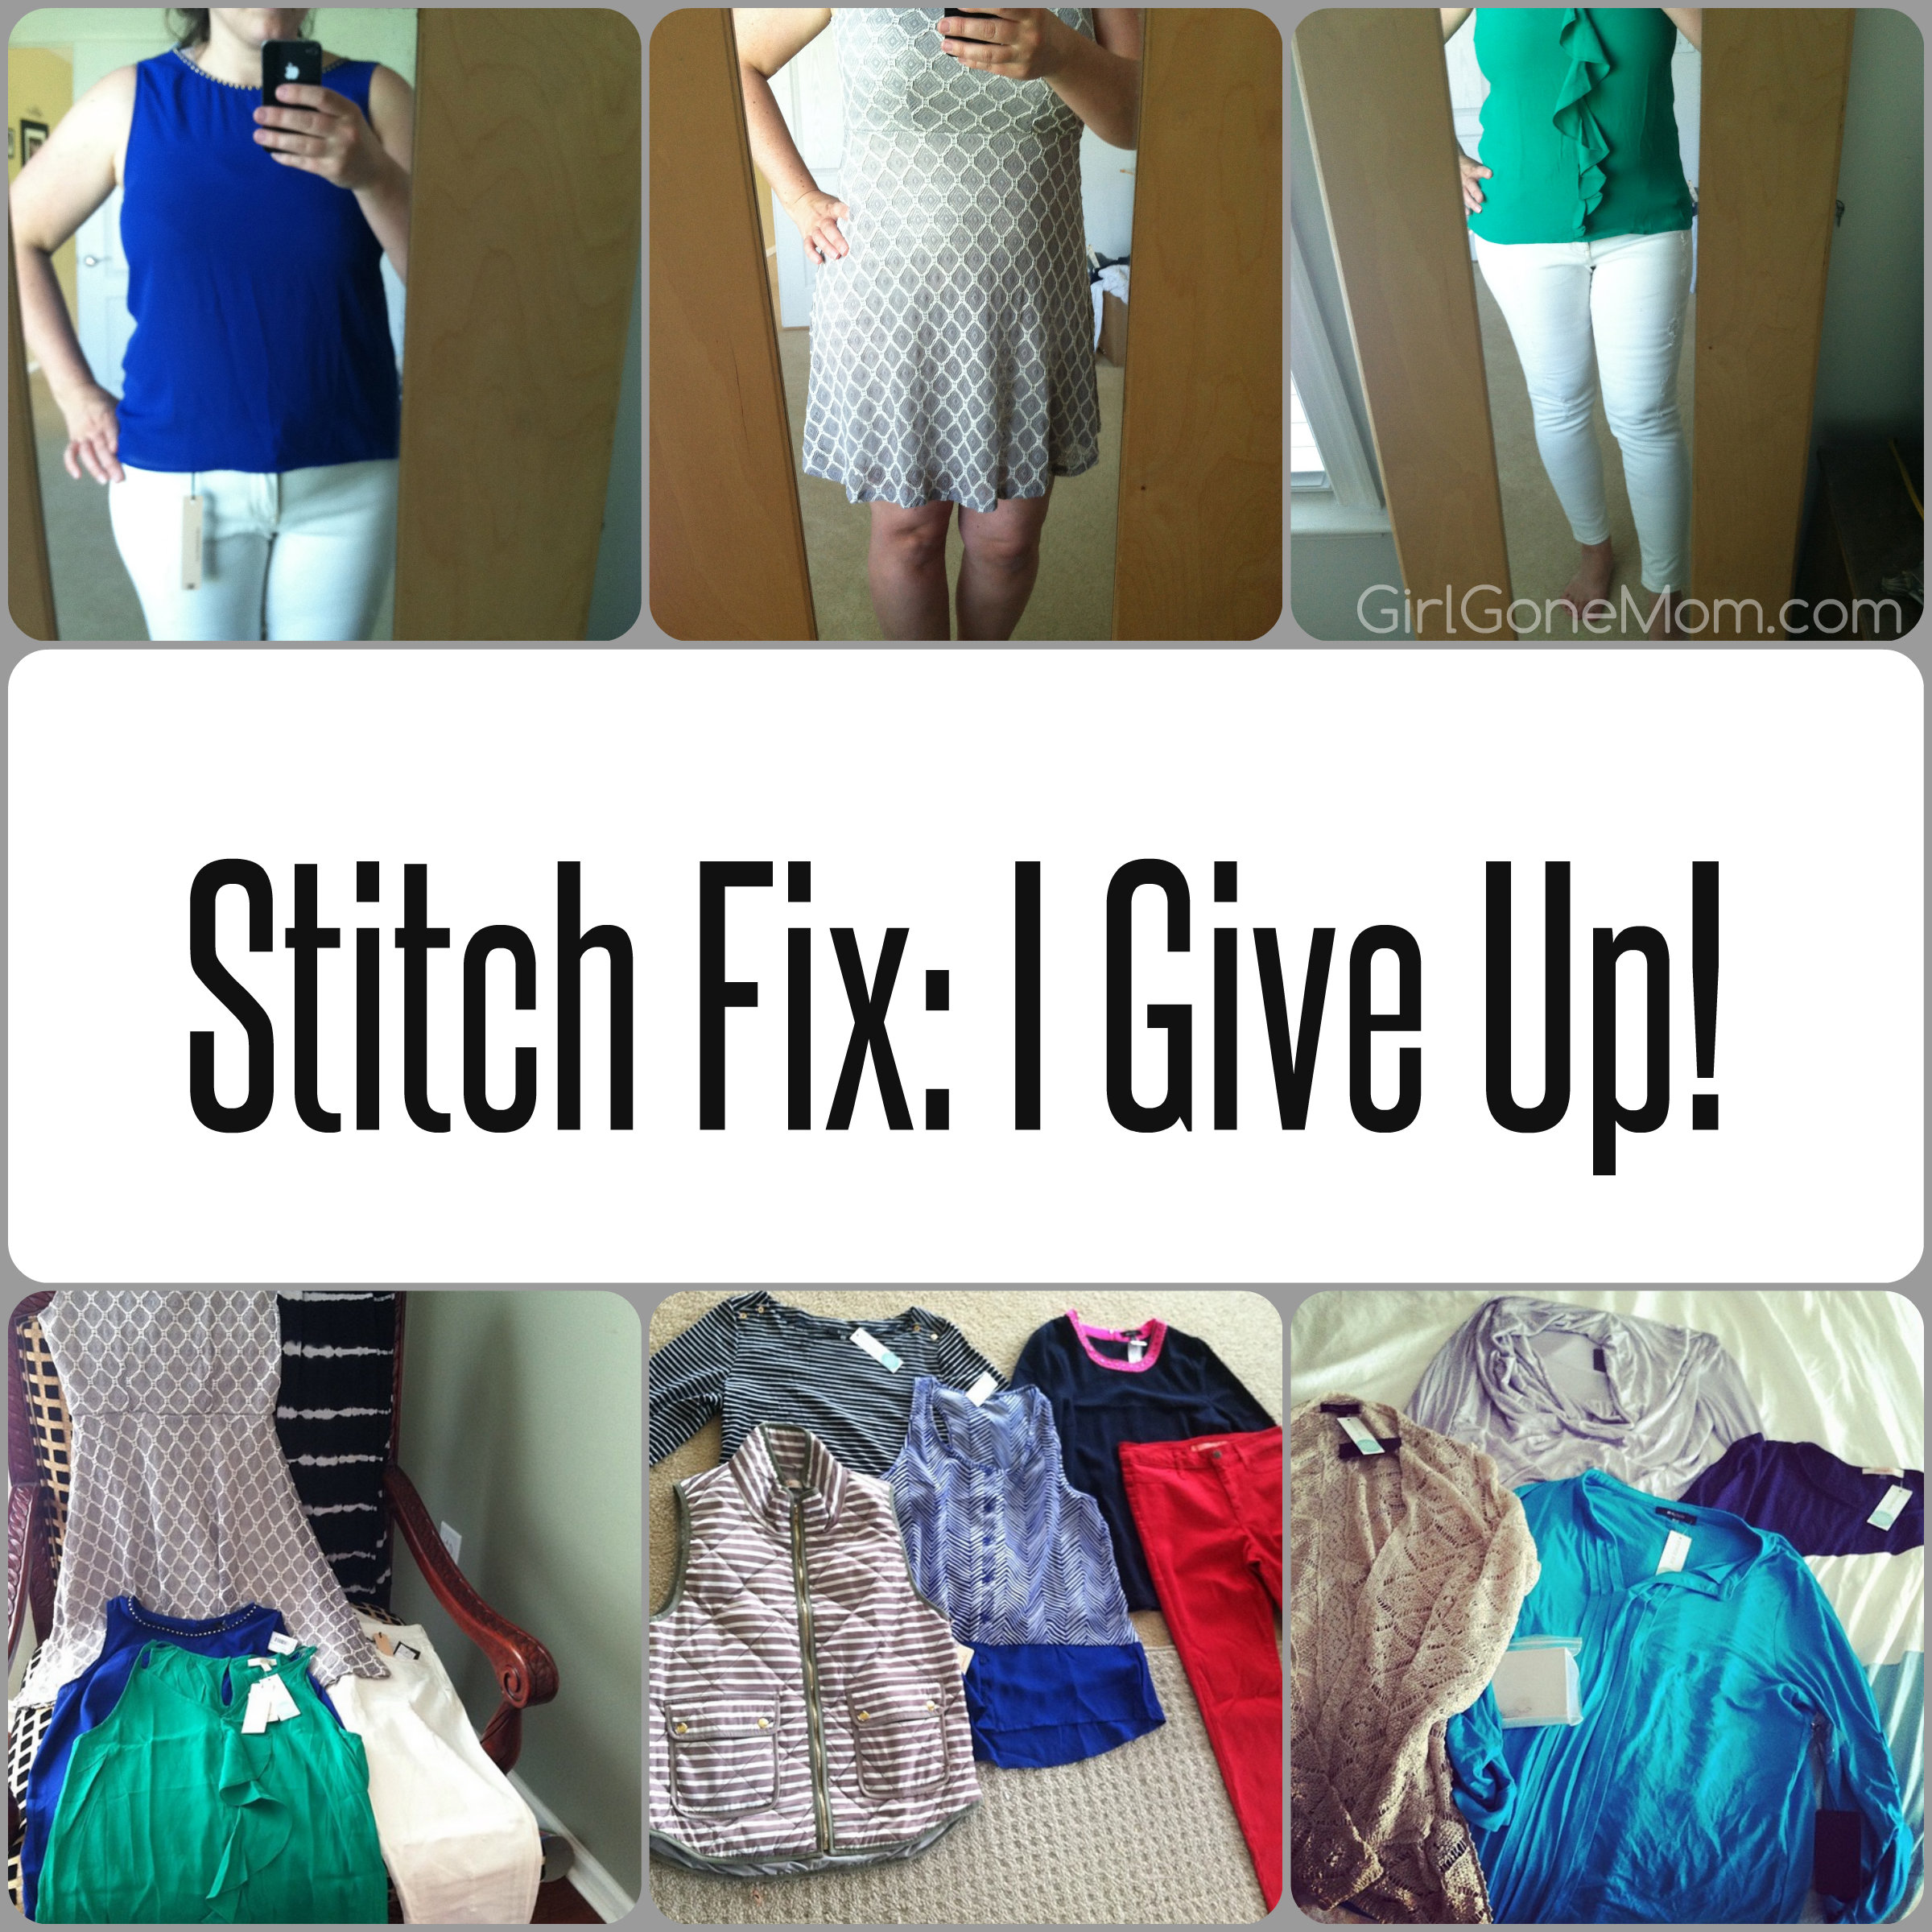 f99922cca03fc Why I'm Giving Up on Stitch Fix, After 3 Failed Attempts